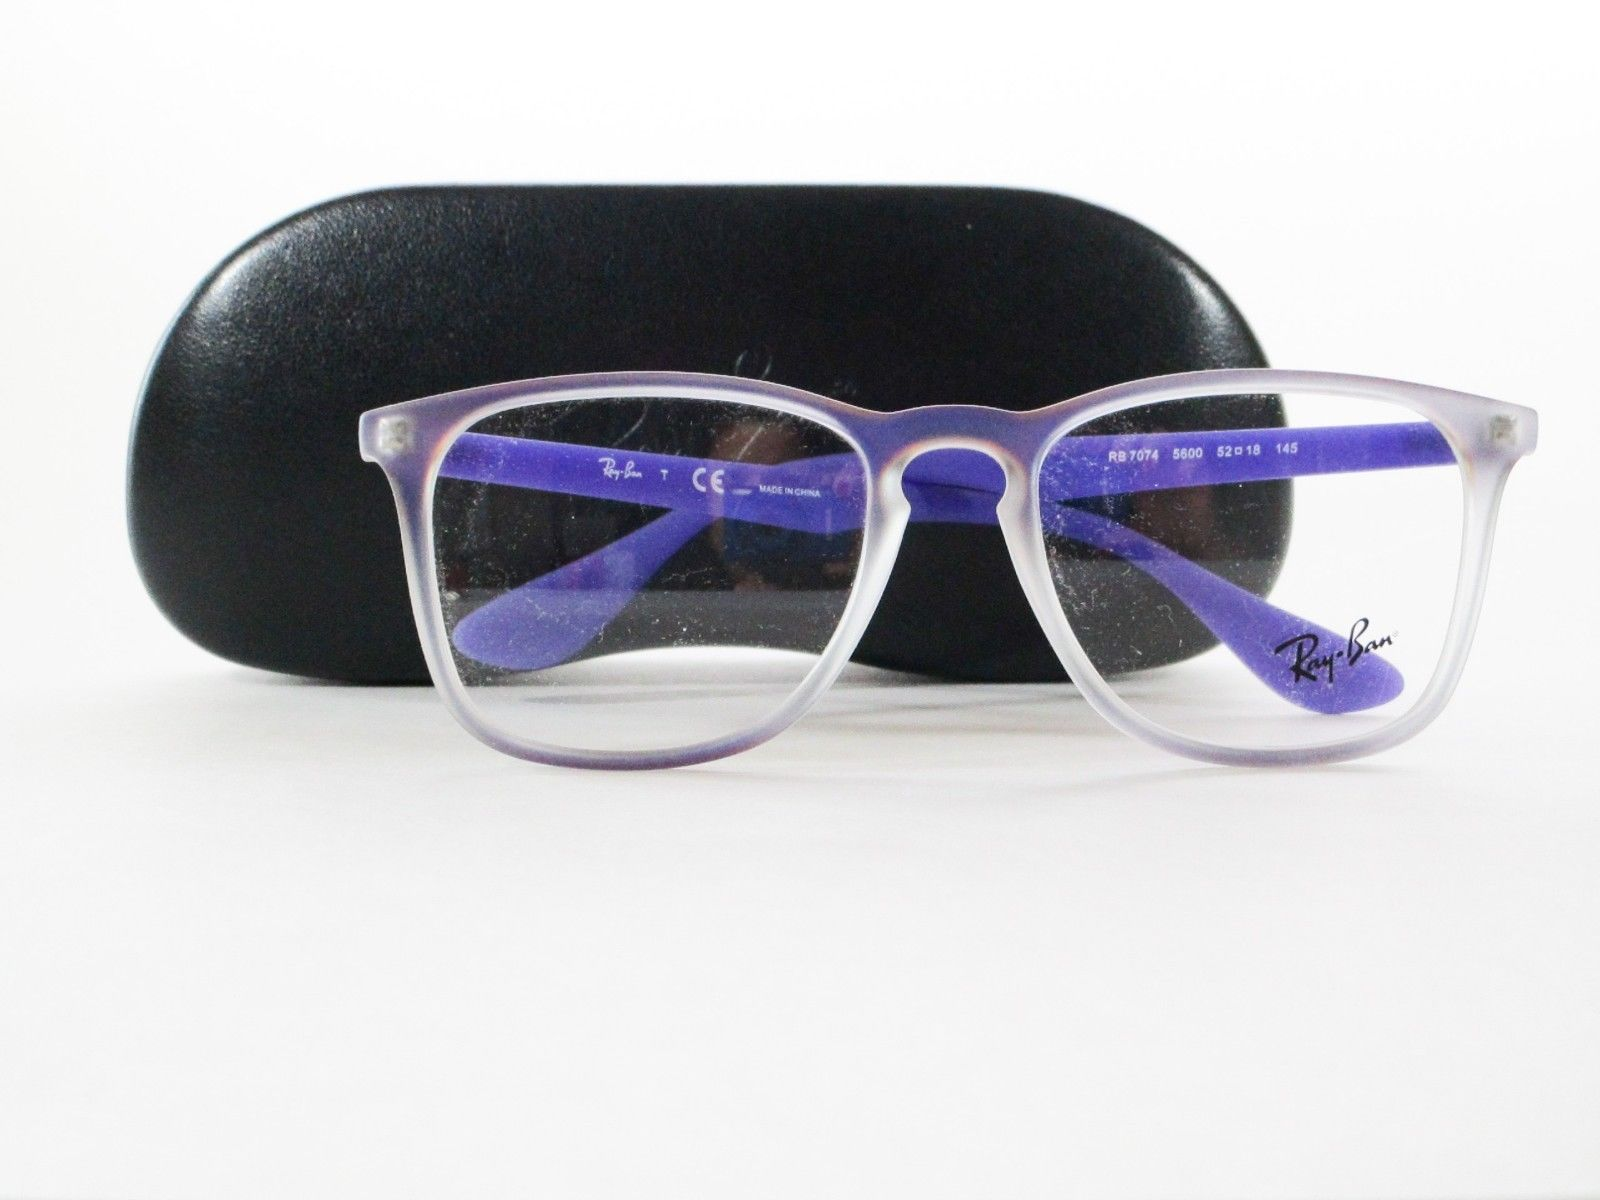 79a40f98646 RayBan RB 7074 5600 Optical Frame Round and 50 similar items. 57